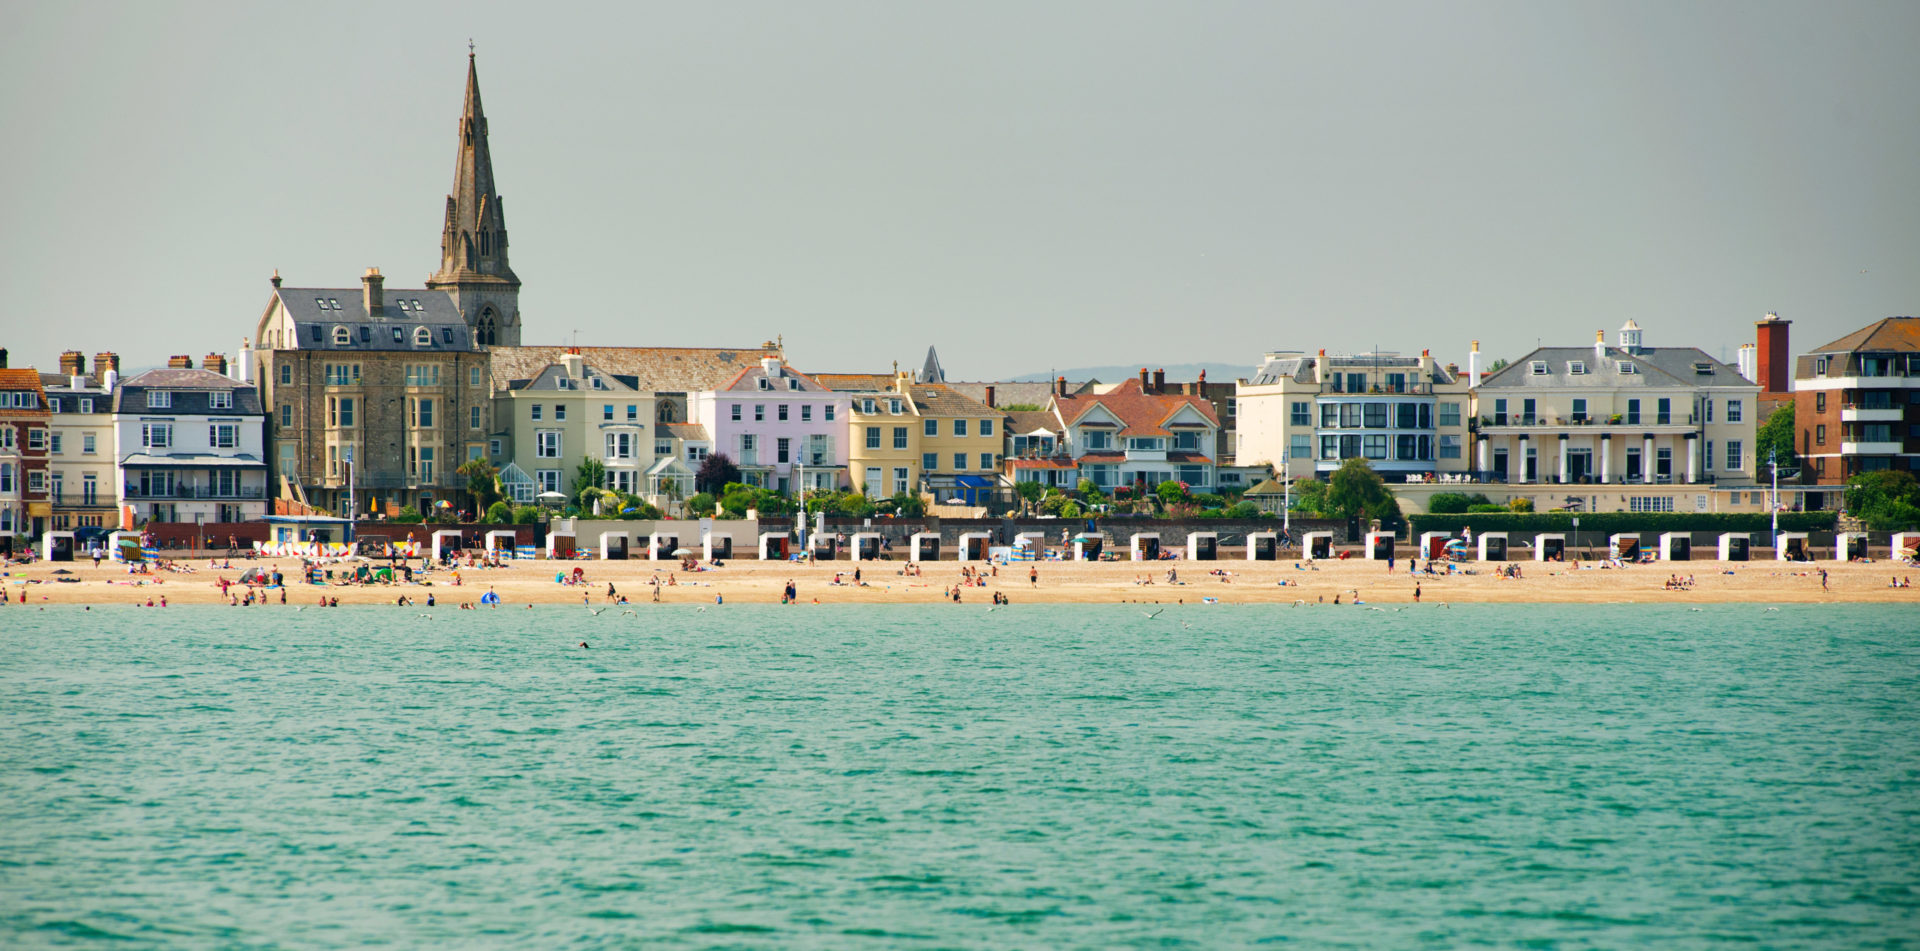 Weymouth - feature image